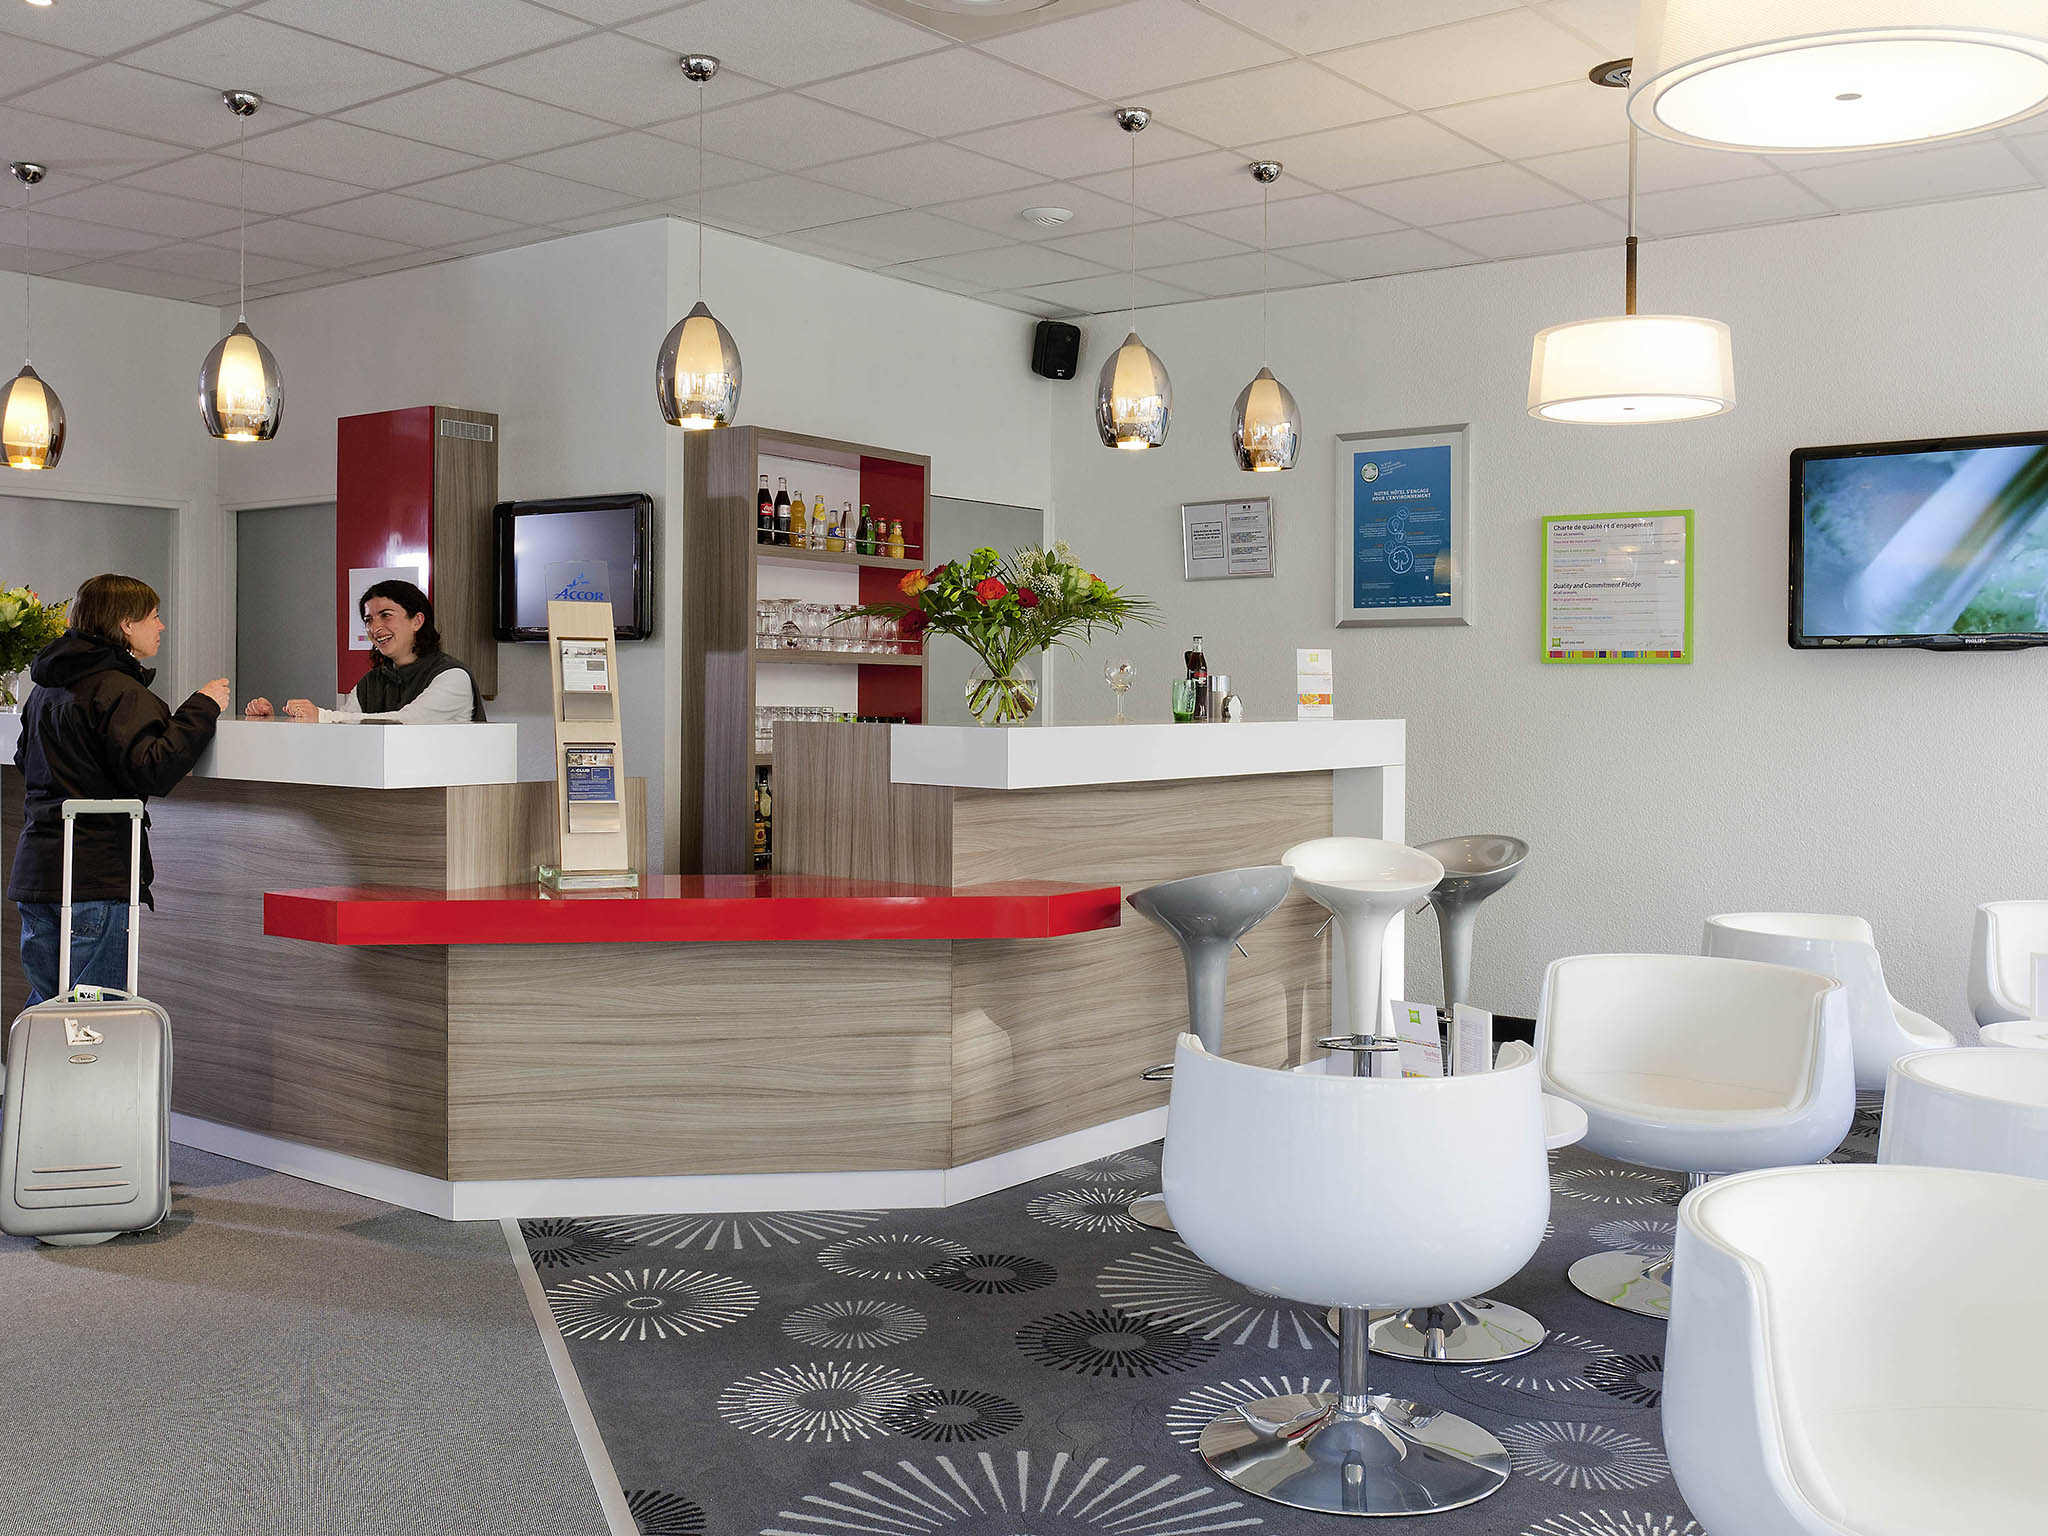 ibis Styles Grenoble Centre Gare Lobby